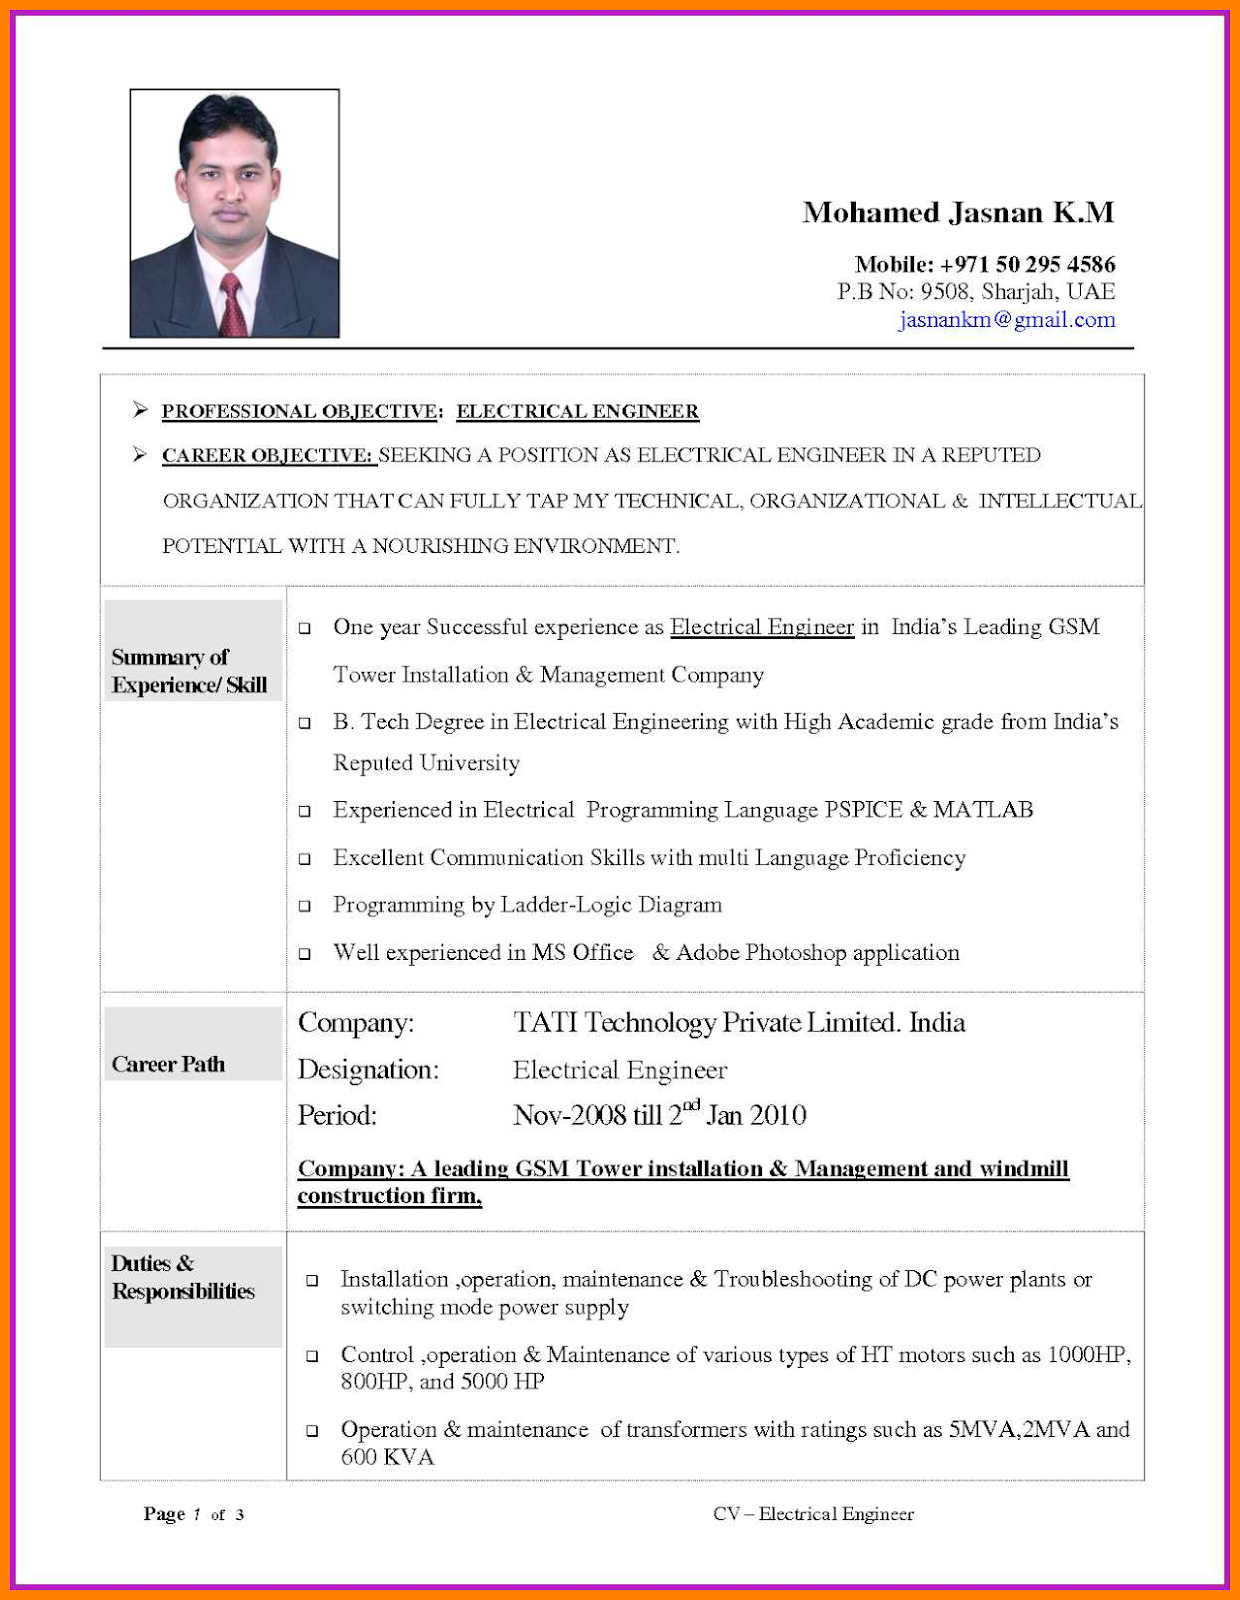 Mechanical Engineering Cv Format Mechanical Engineering Cv Format For Fresher Pdf Mechanical Engineering Resume Engineering Resume Templates Resume Examples